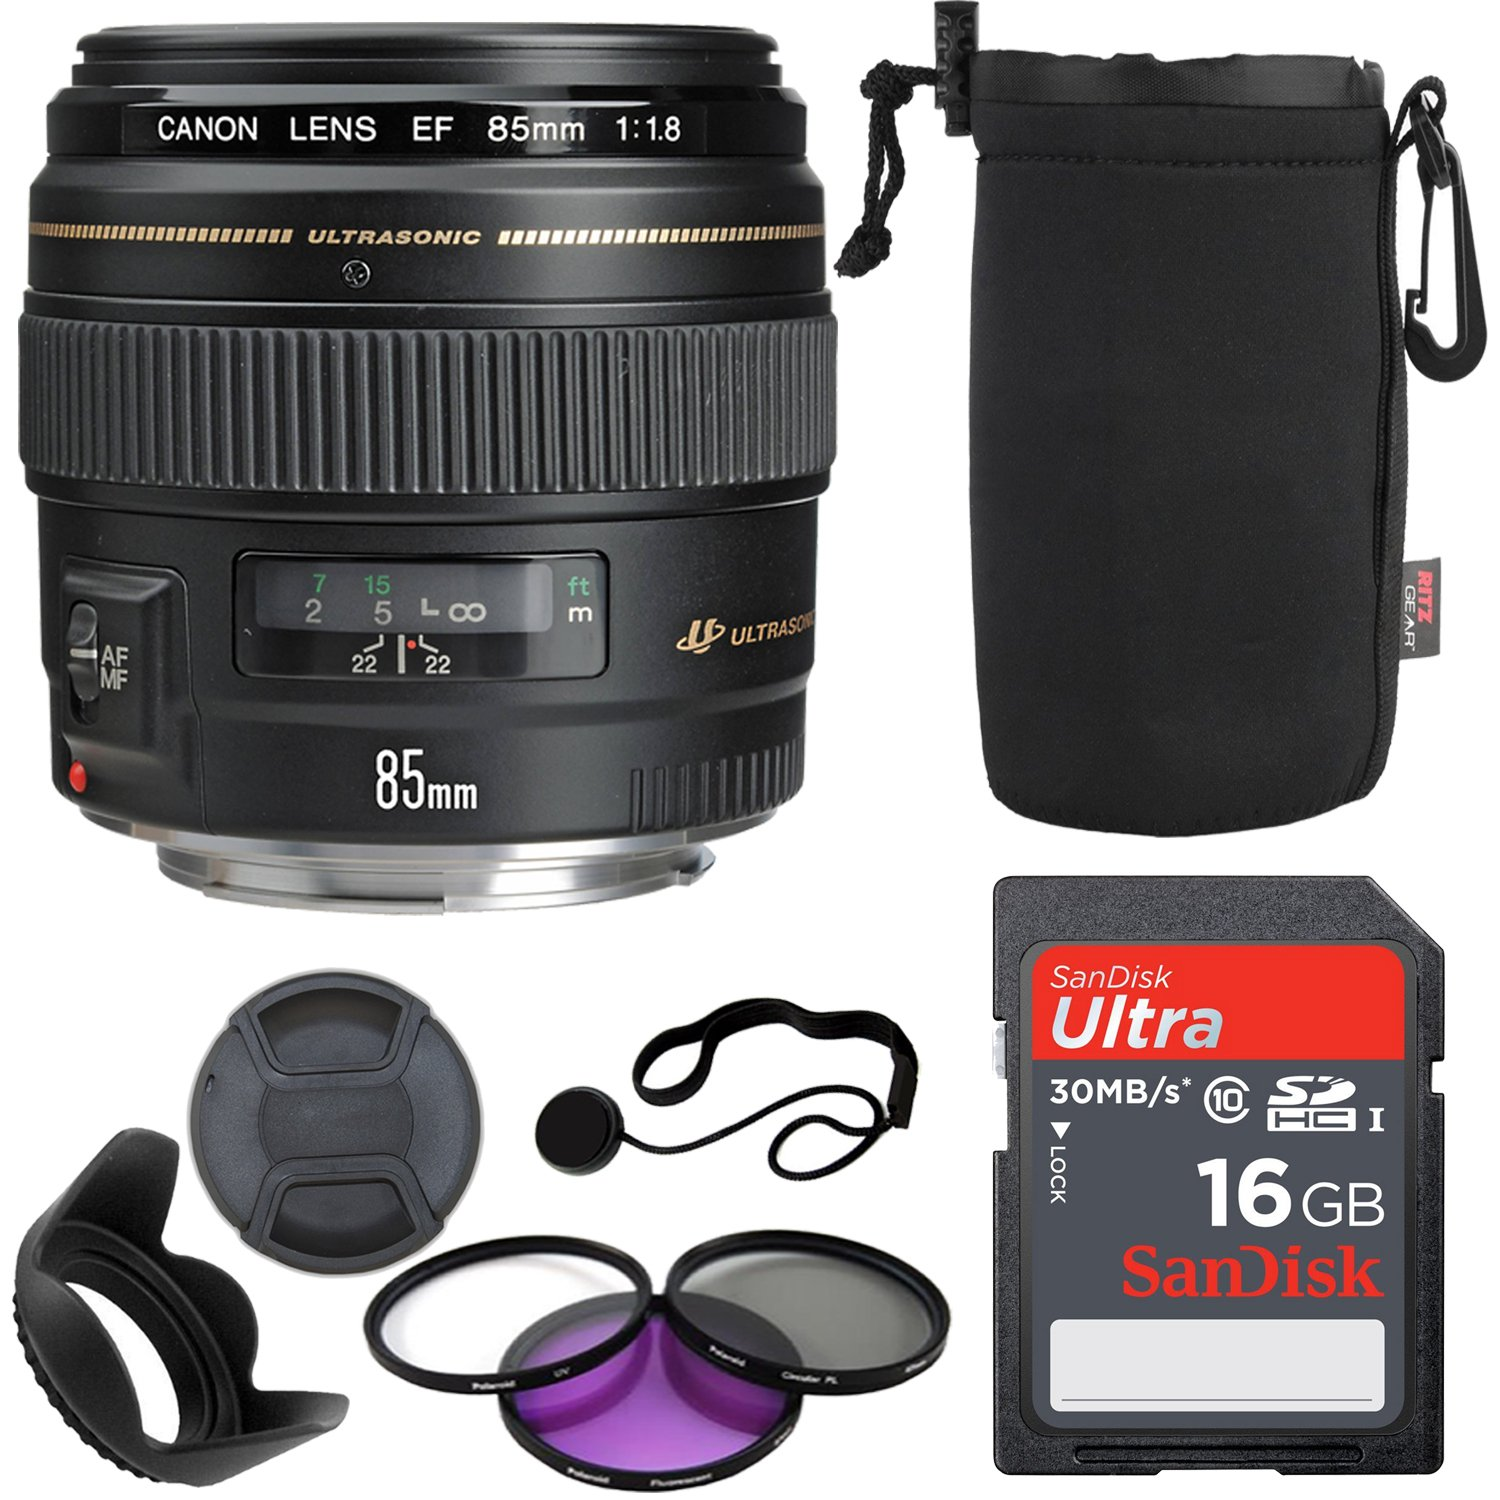 Canon EF 85mm f/1.8 USM Medium Telephoto Lens for Canon SLR Cameras 2519A003 - Fixed, 16GB Memory Card, Polaroid 58mm Filter Kit, Ritz Gear Protective Pouch, Lens Cap and Accessory Bundle